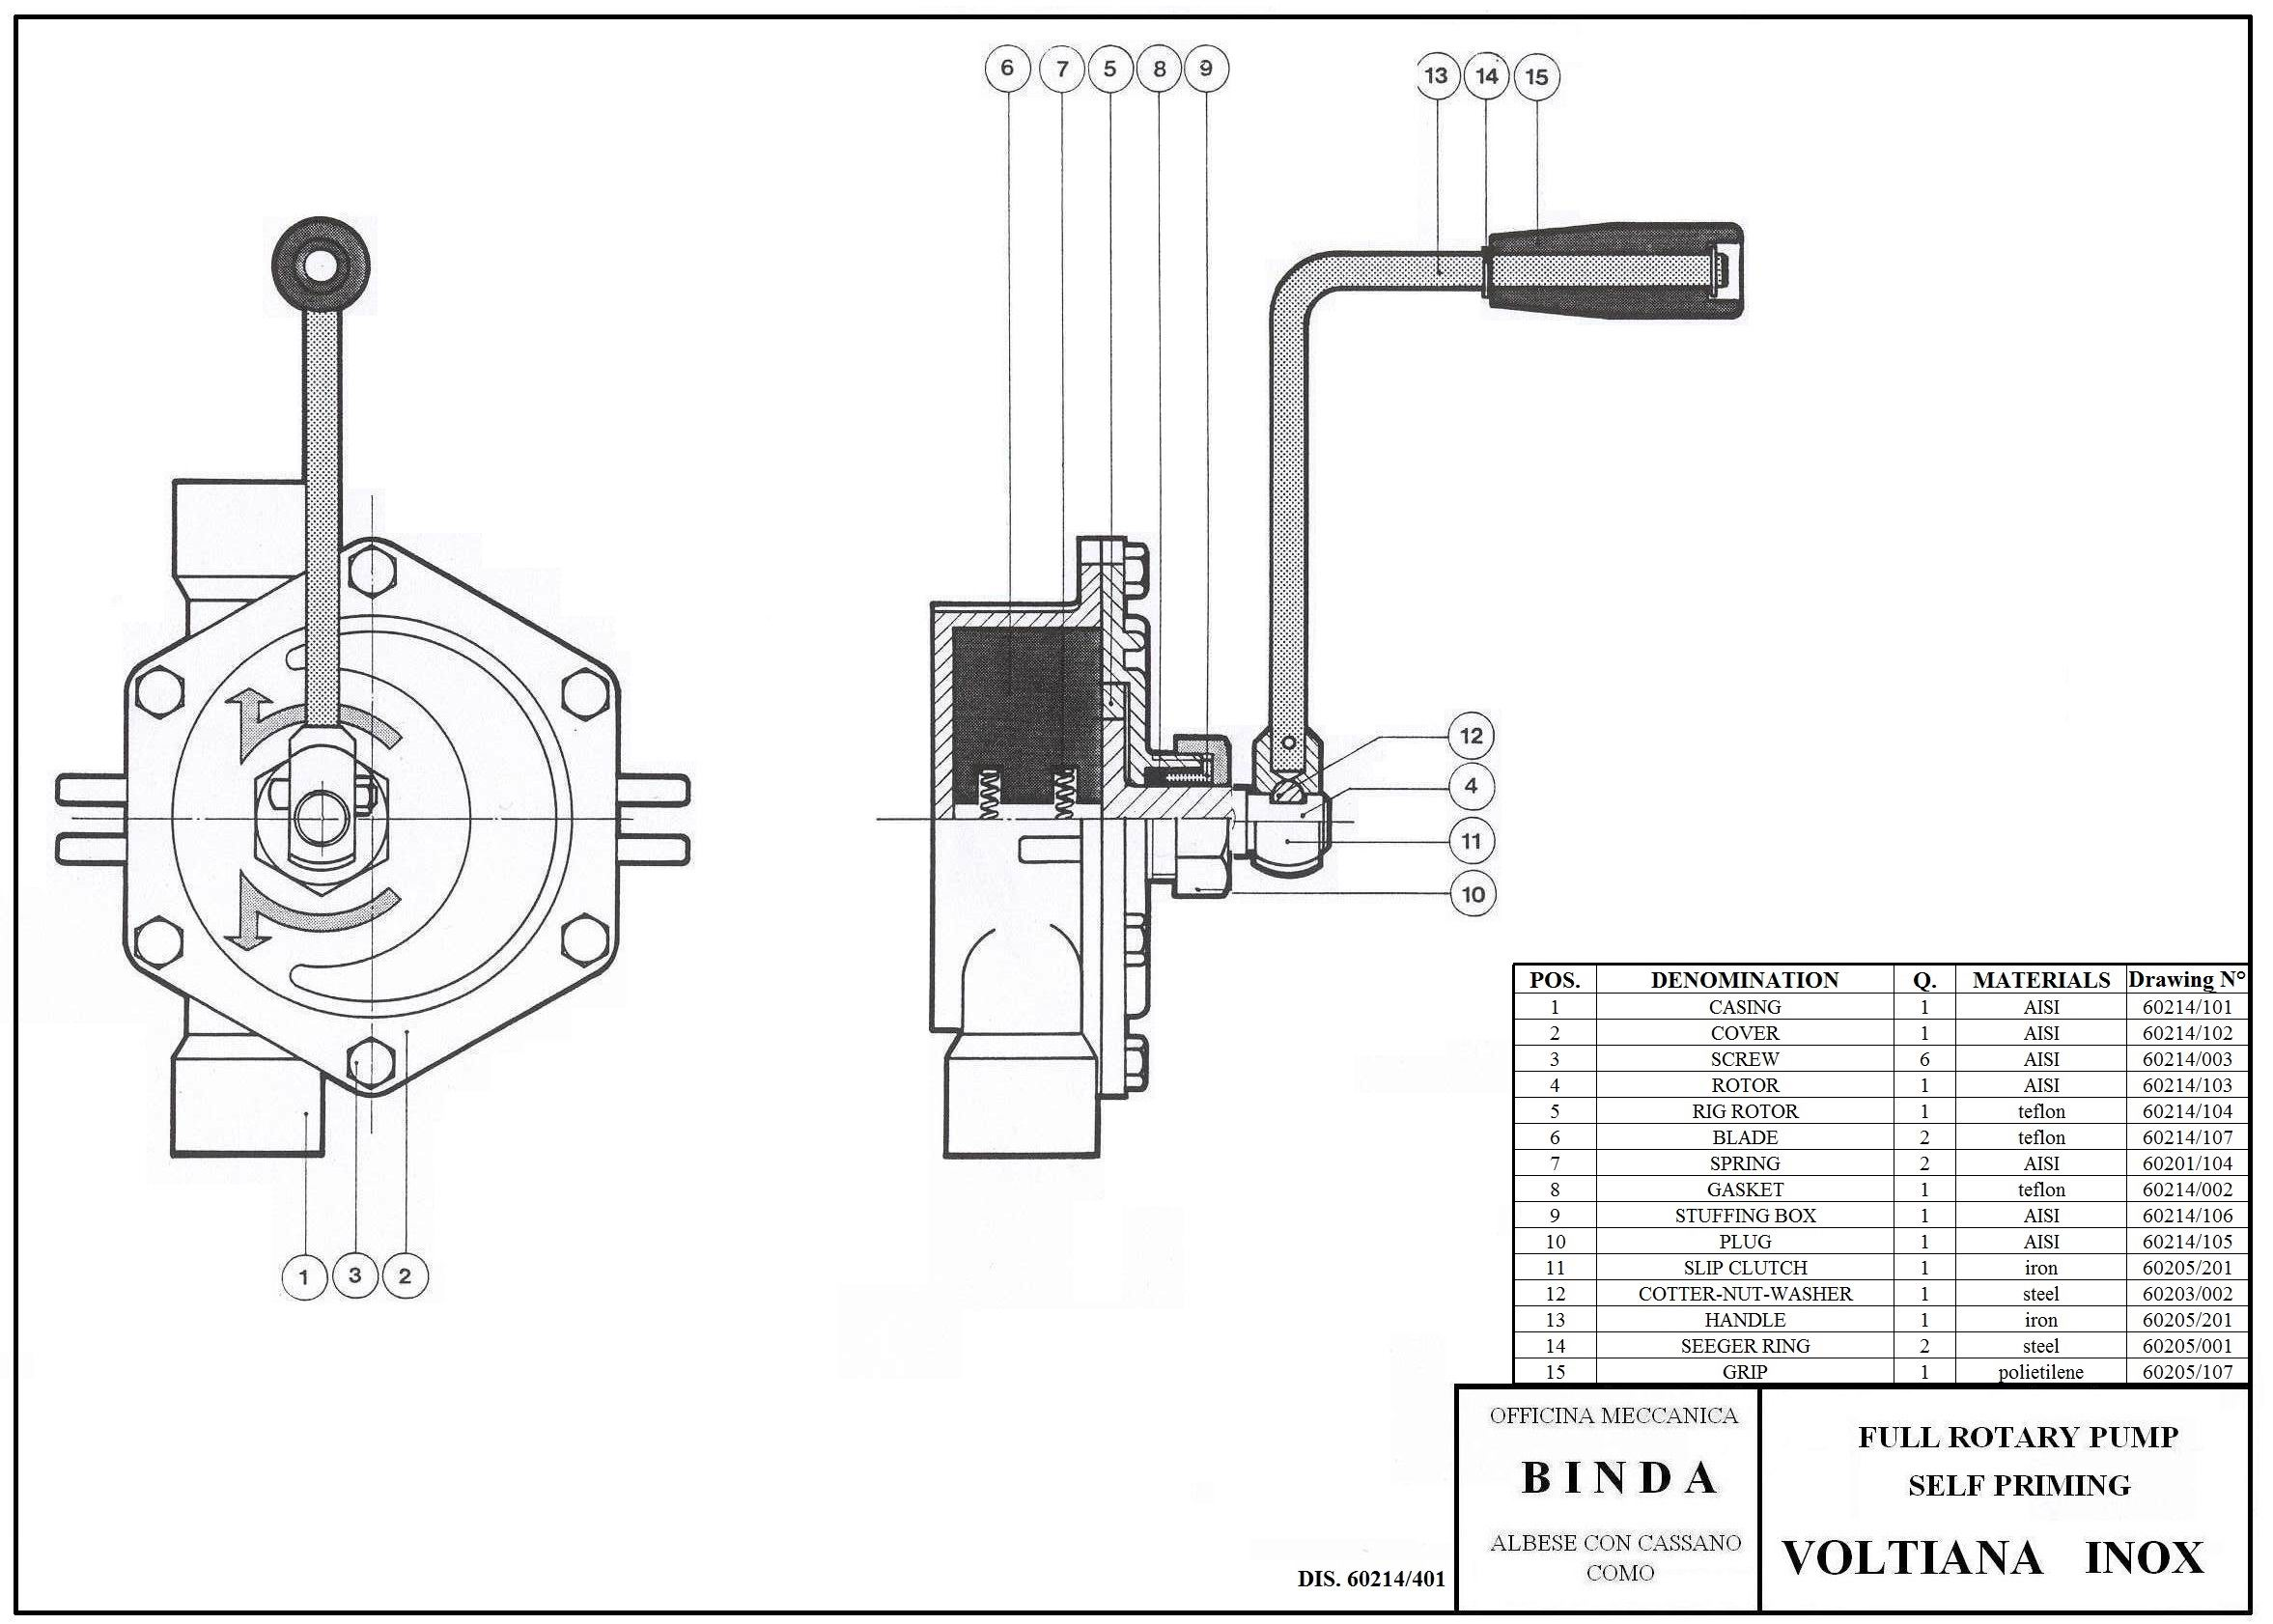 Binda Voltiana Inox Rotary Hand Pump Amp Manual Pump